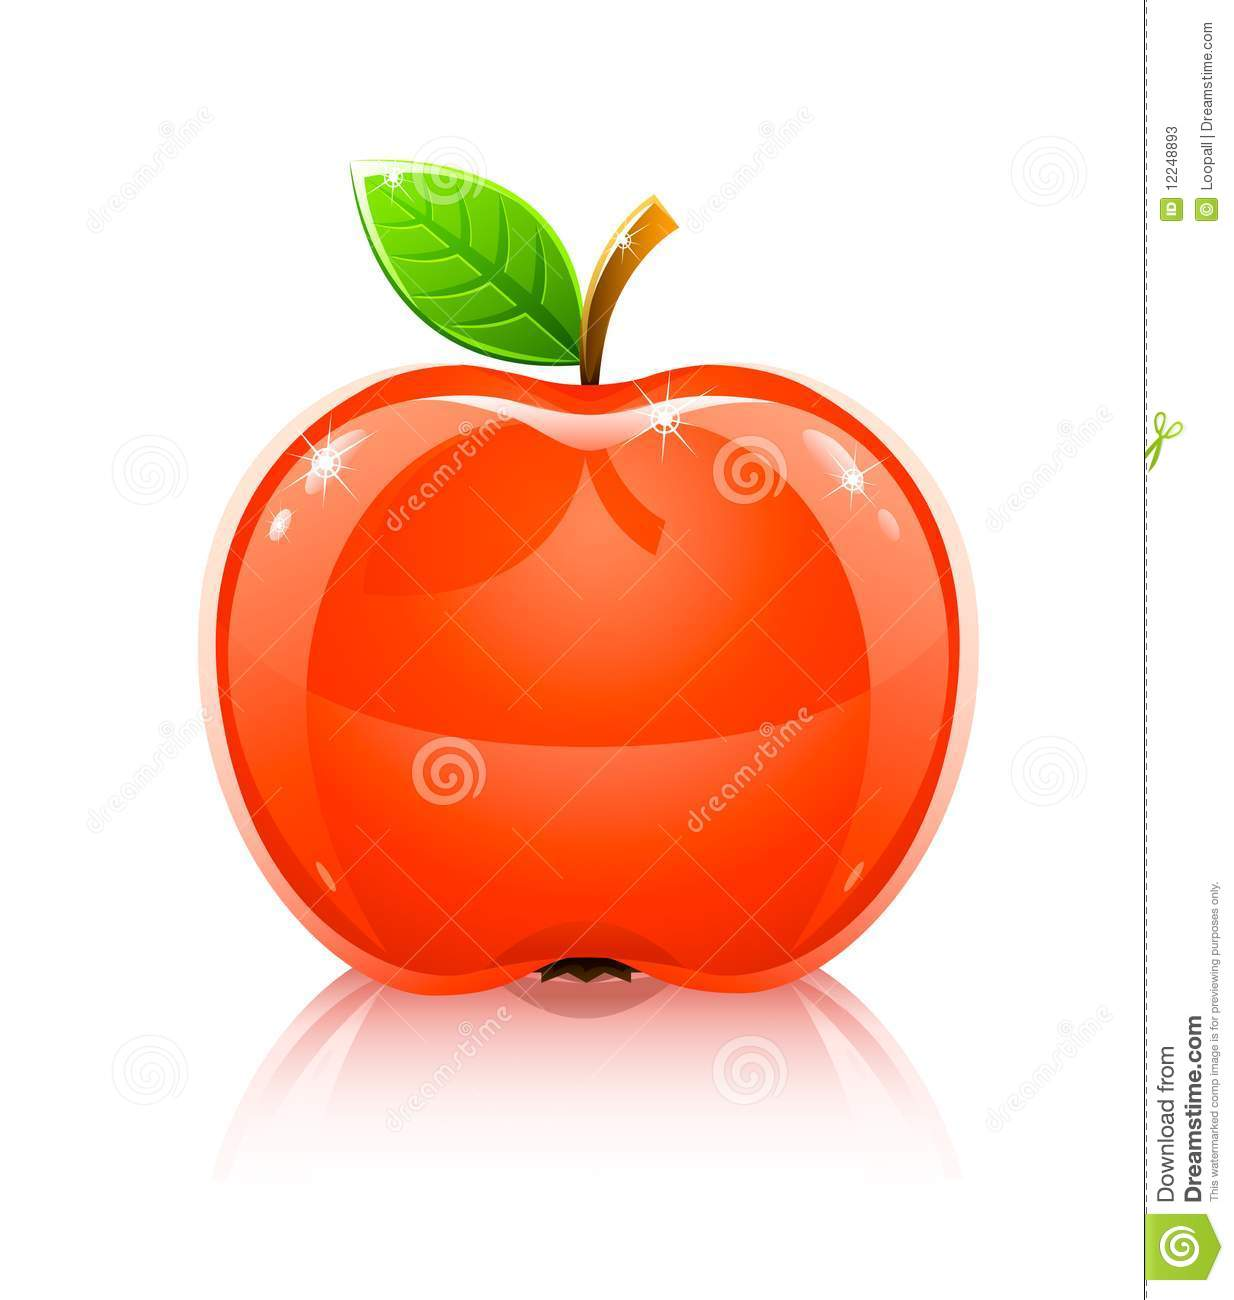 Apple fruit images download - Glossy Glass Red Apple Fruit With Leaf Stock Photos